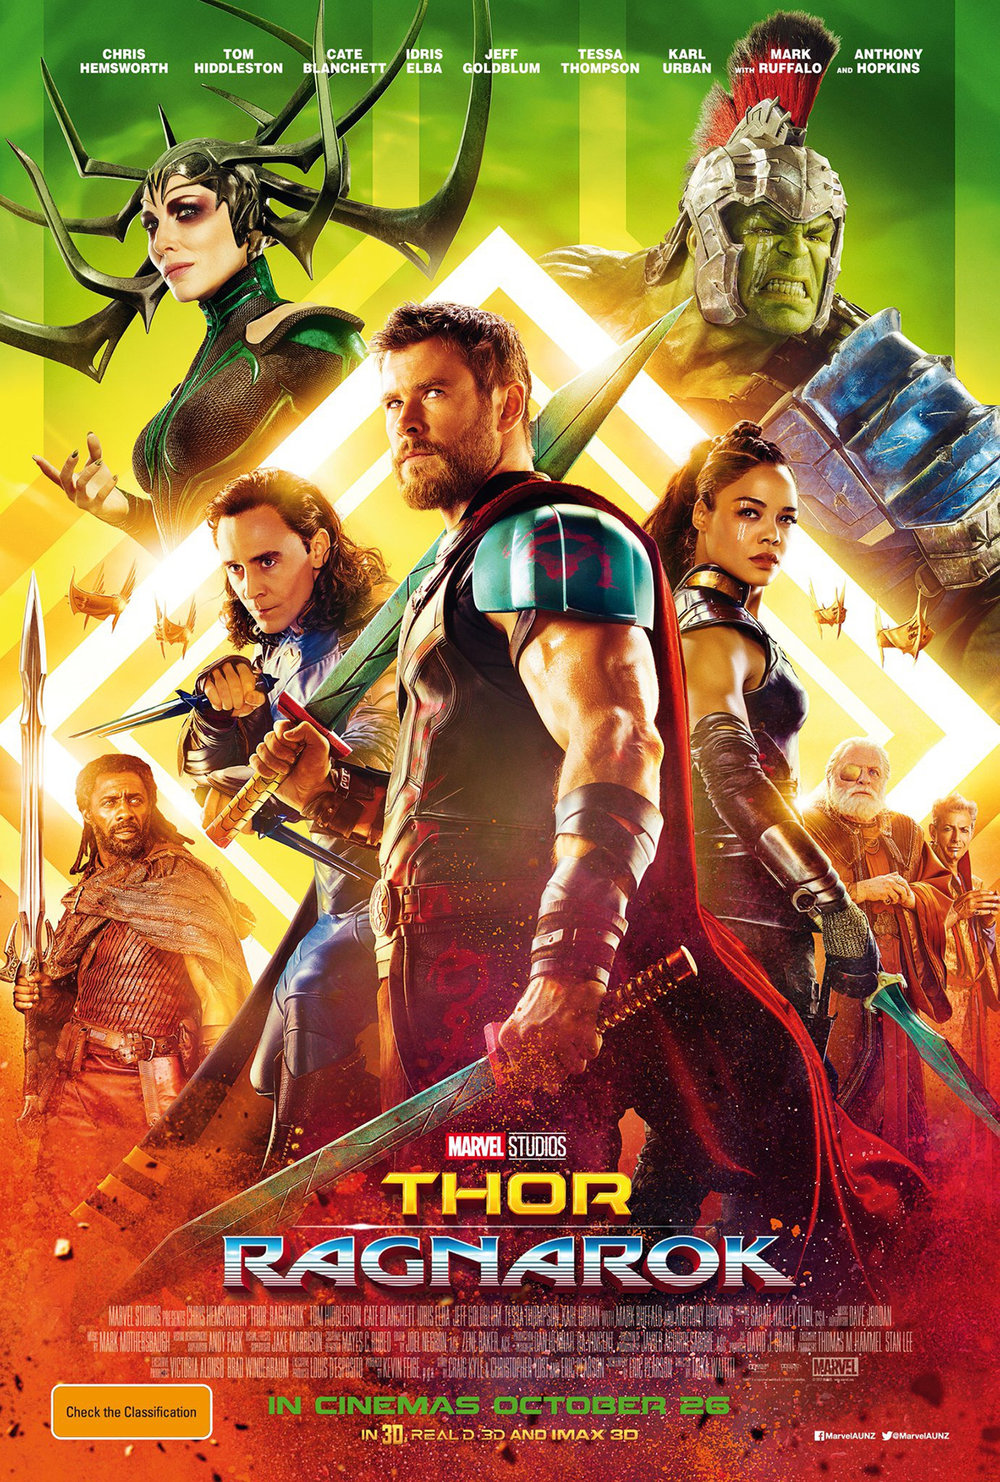 Thor-Ragnarok-international-poster.jpg